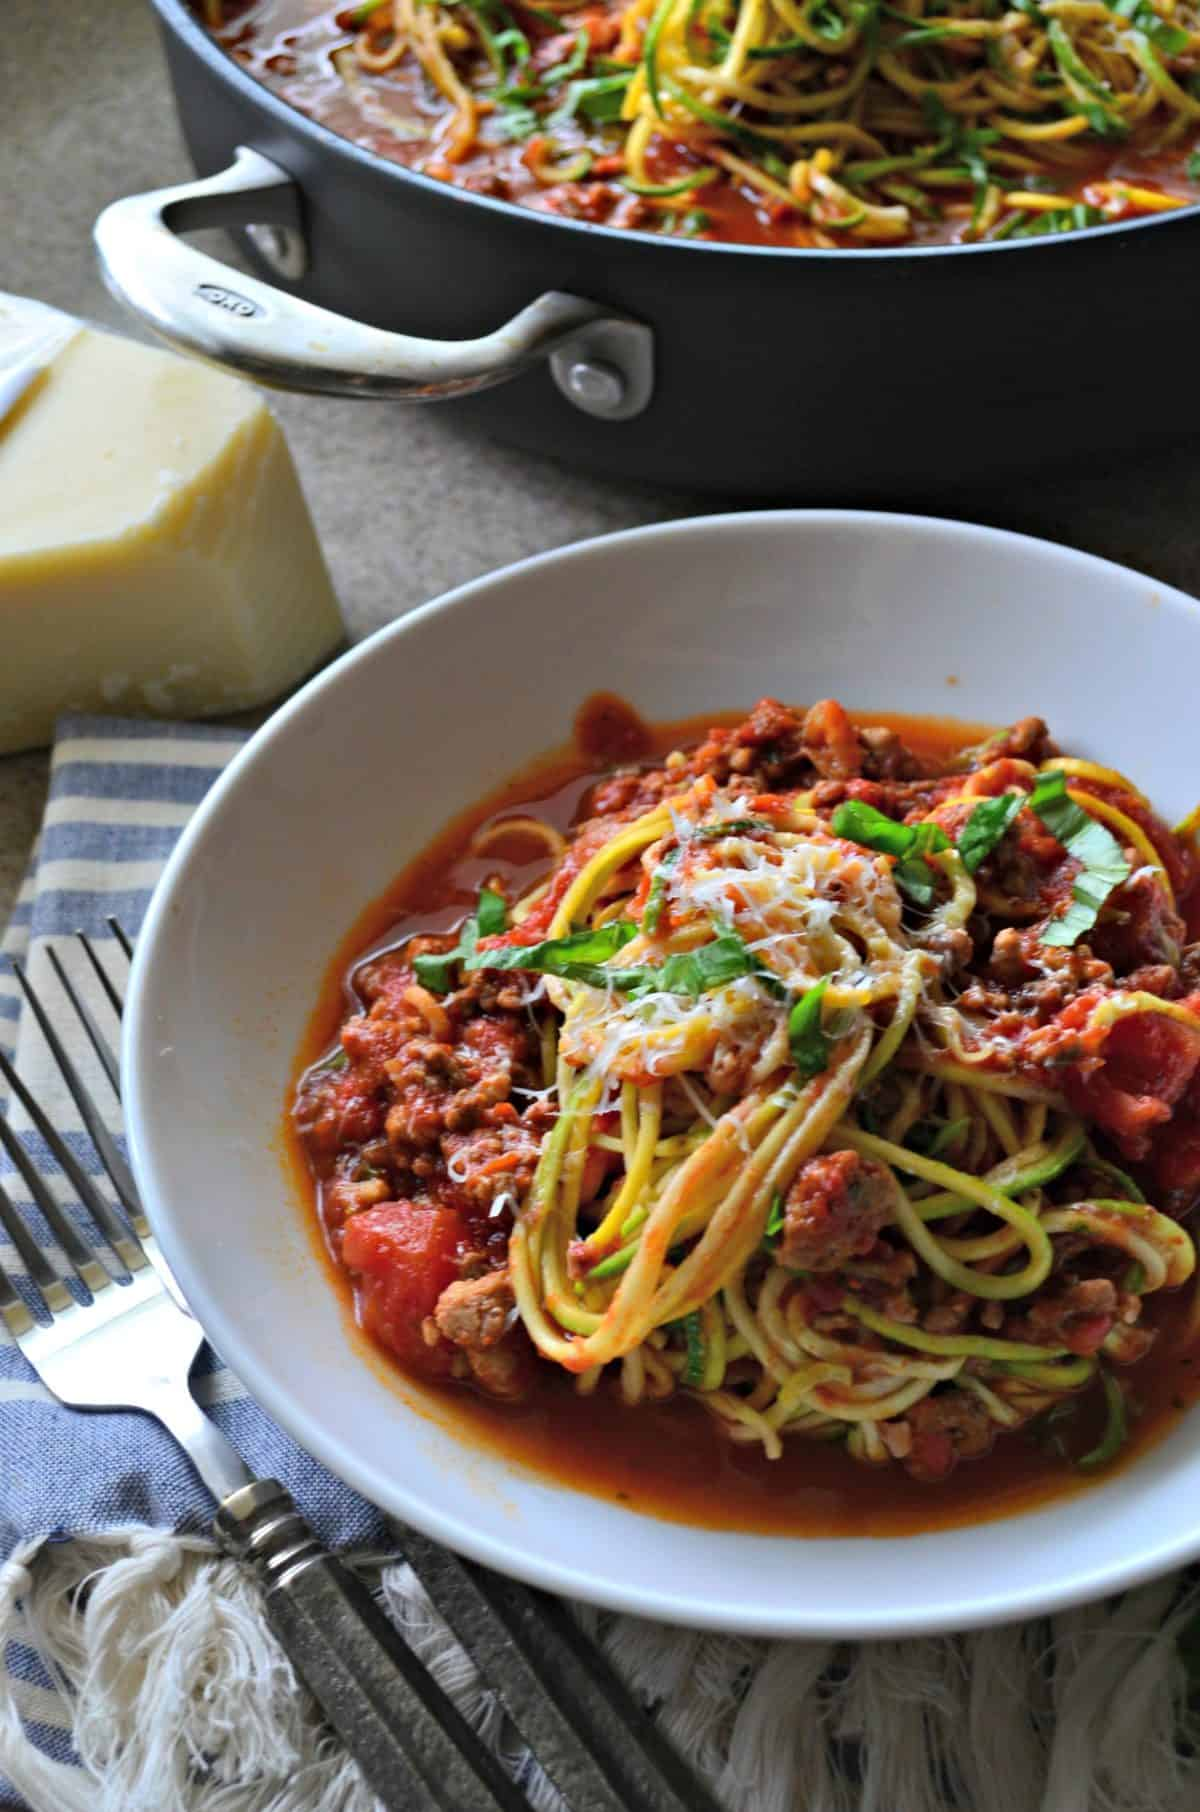 White bowl filled with zucchini noodles and meat sauce with skillet in background.